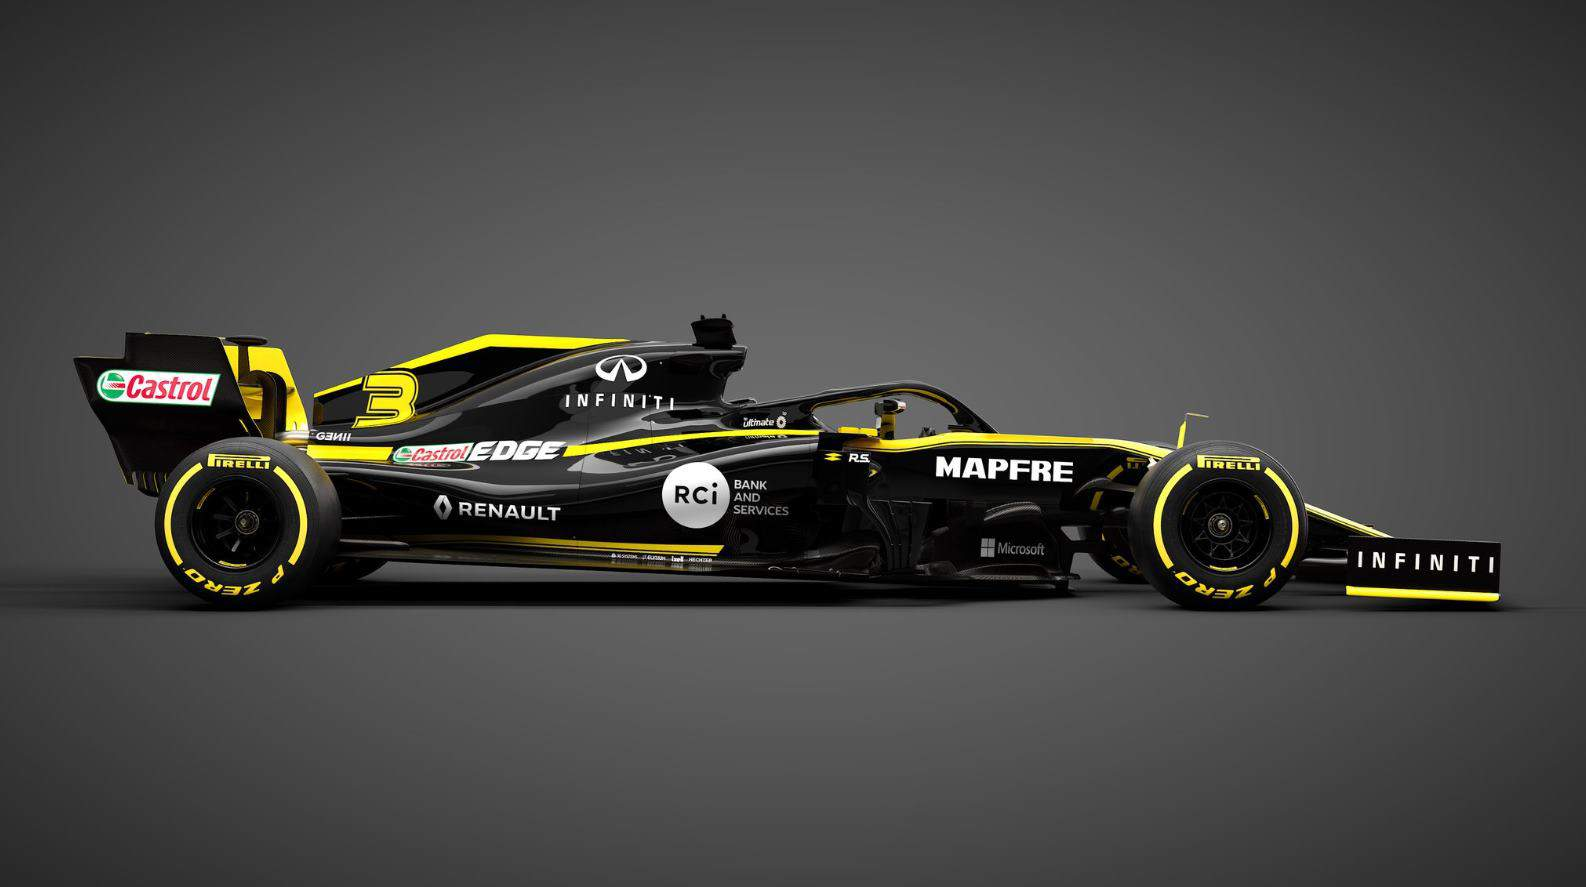 Renault RS19 Twitter Renault Sport F1 side MAXF1net